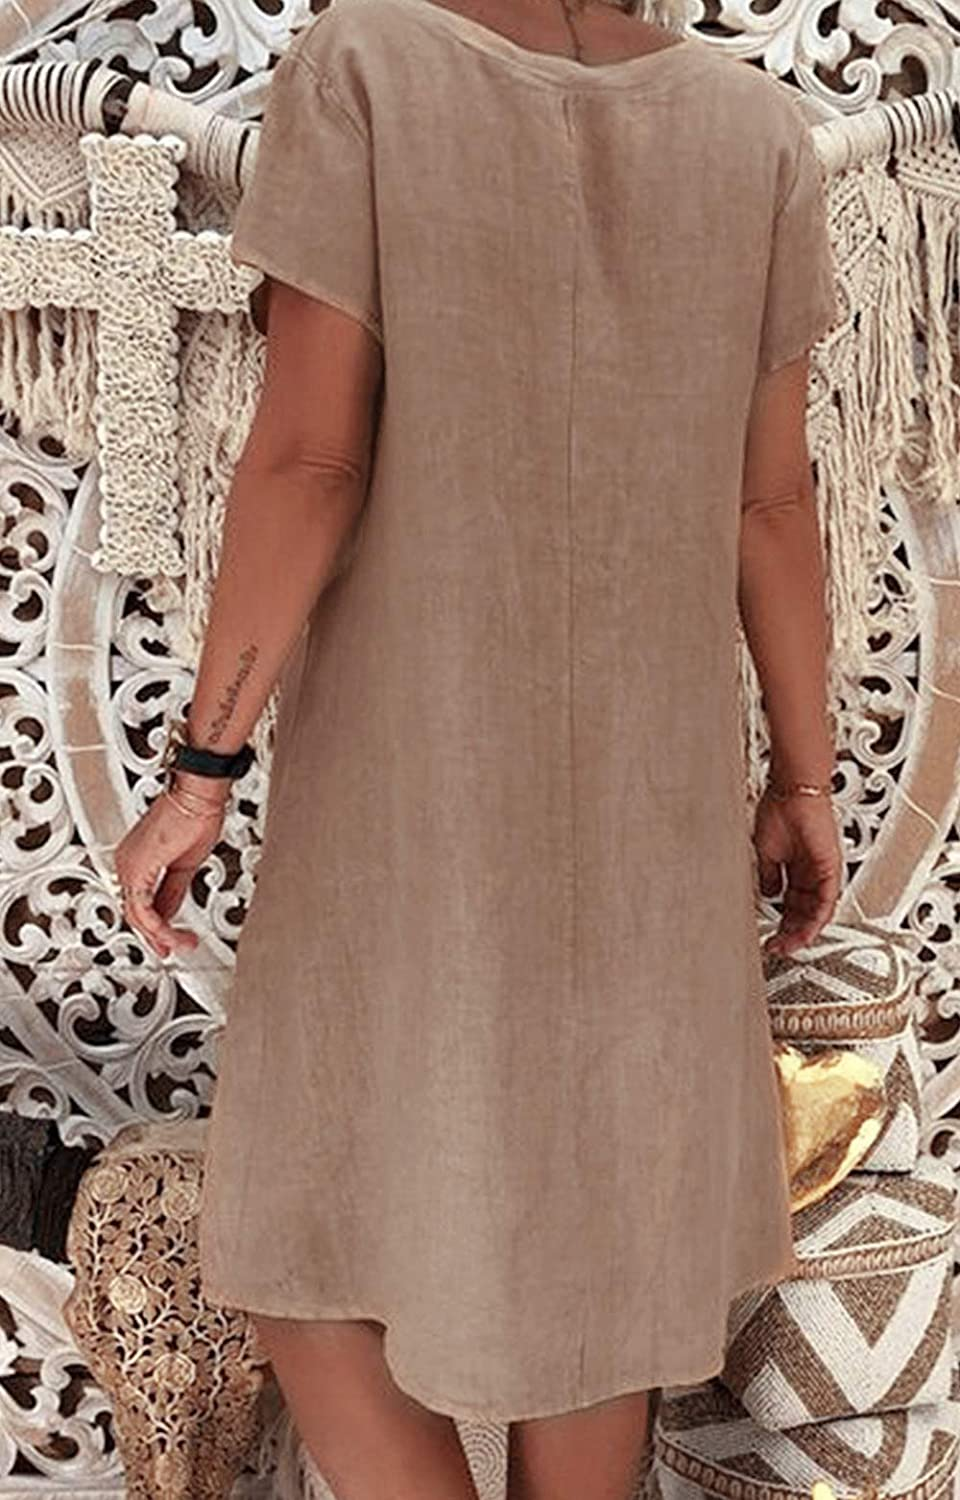 Yidarton Womens V Neck Summer Dress Short Sleeve Casual Midi Dress Chic Vintage Ethnic Sundress Solid Color Loose Linen Dress Without Accessories